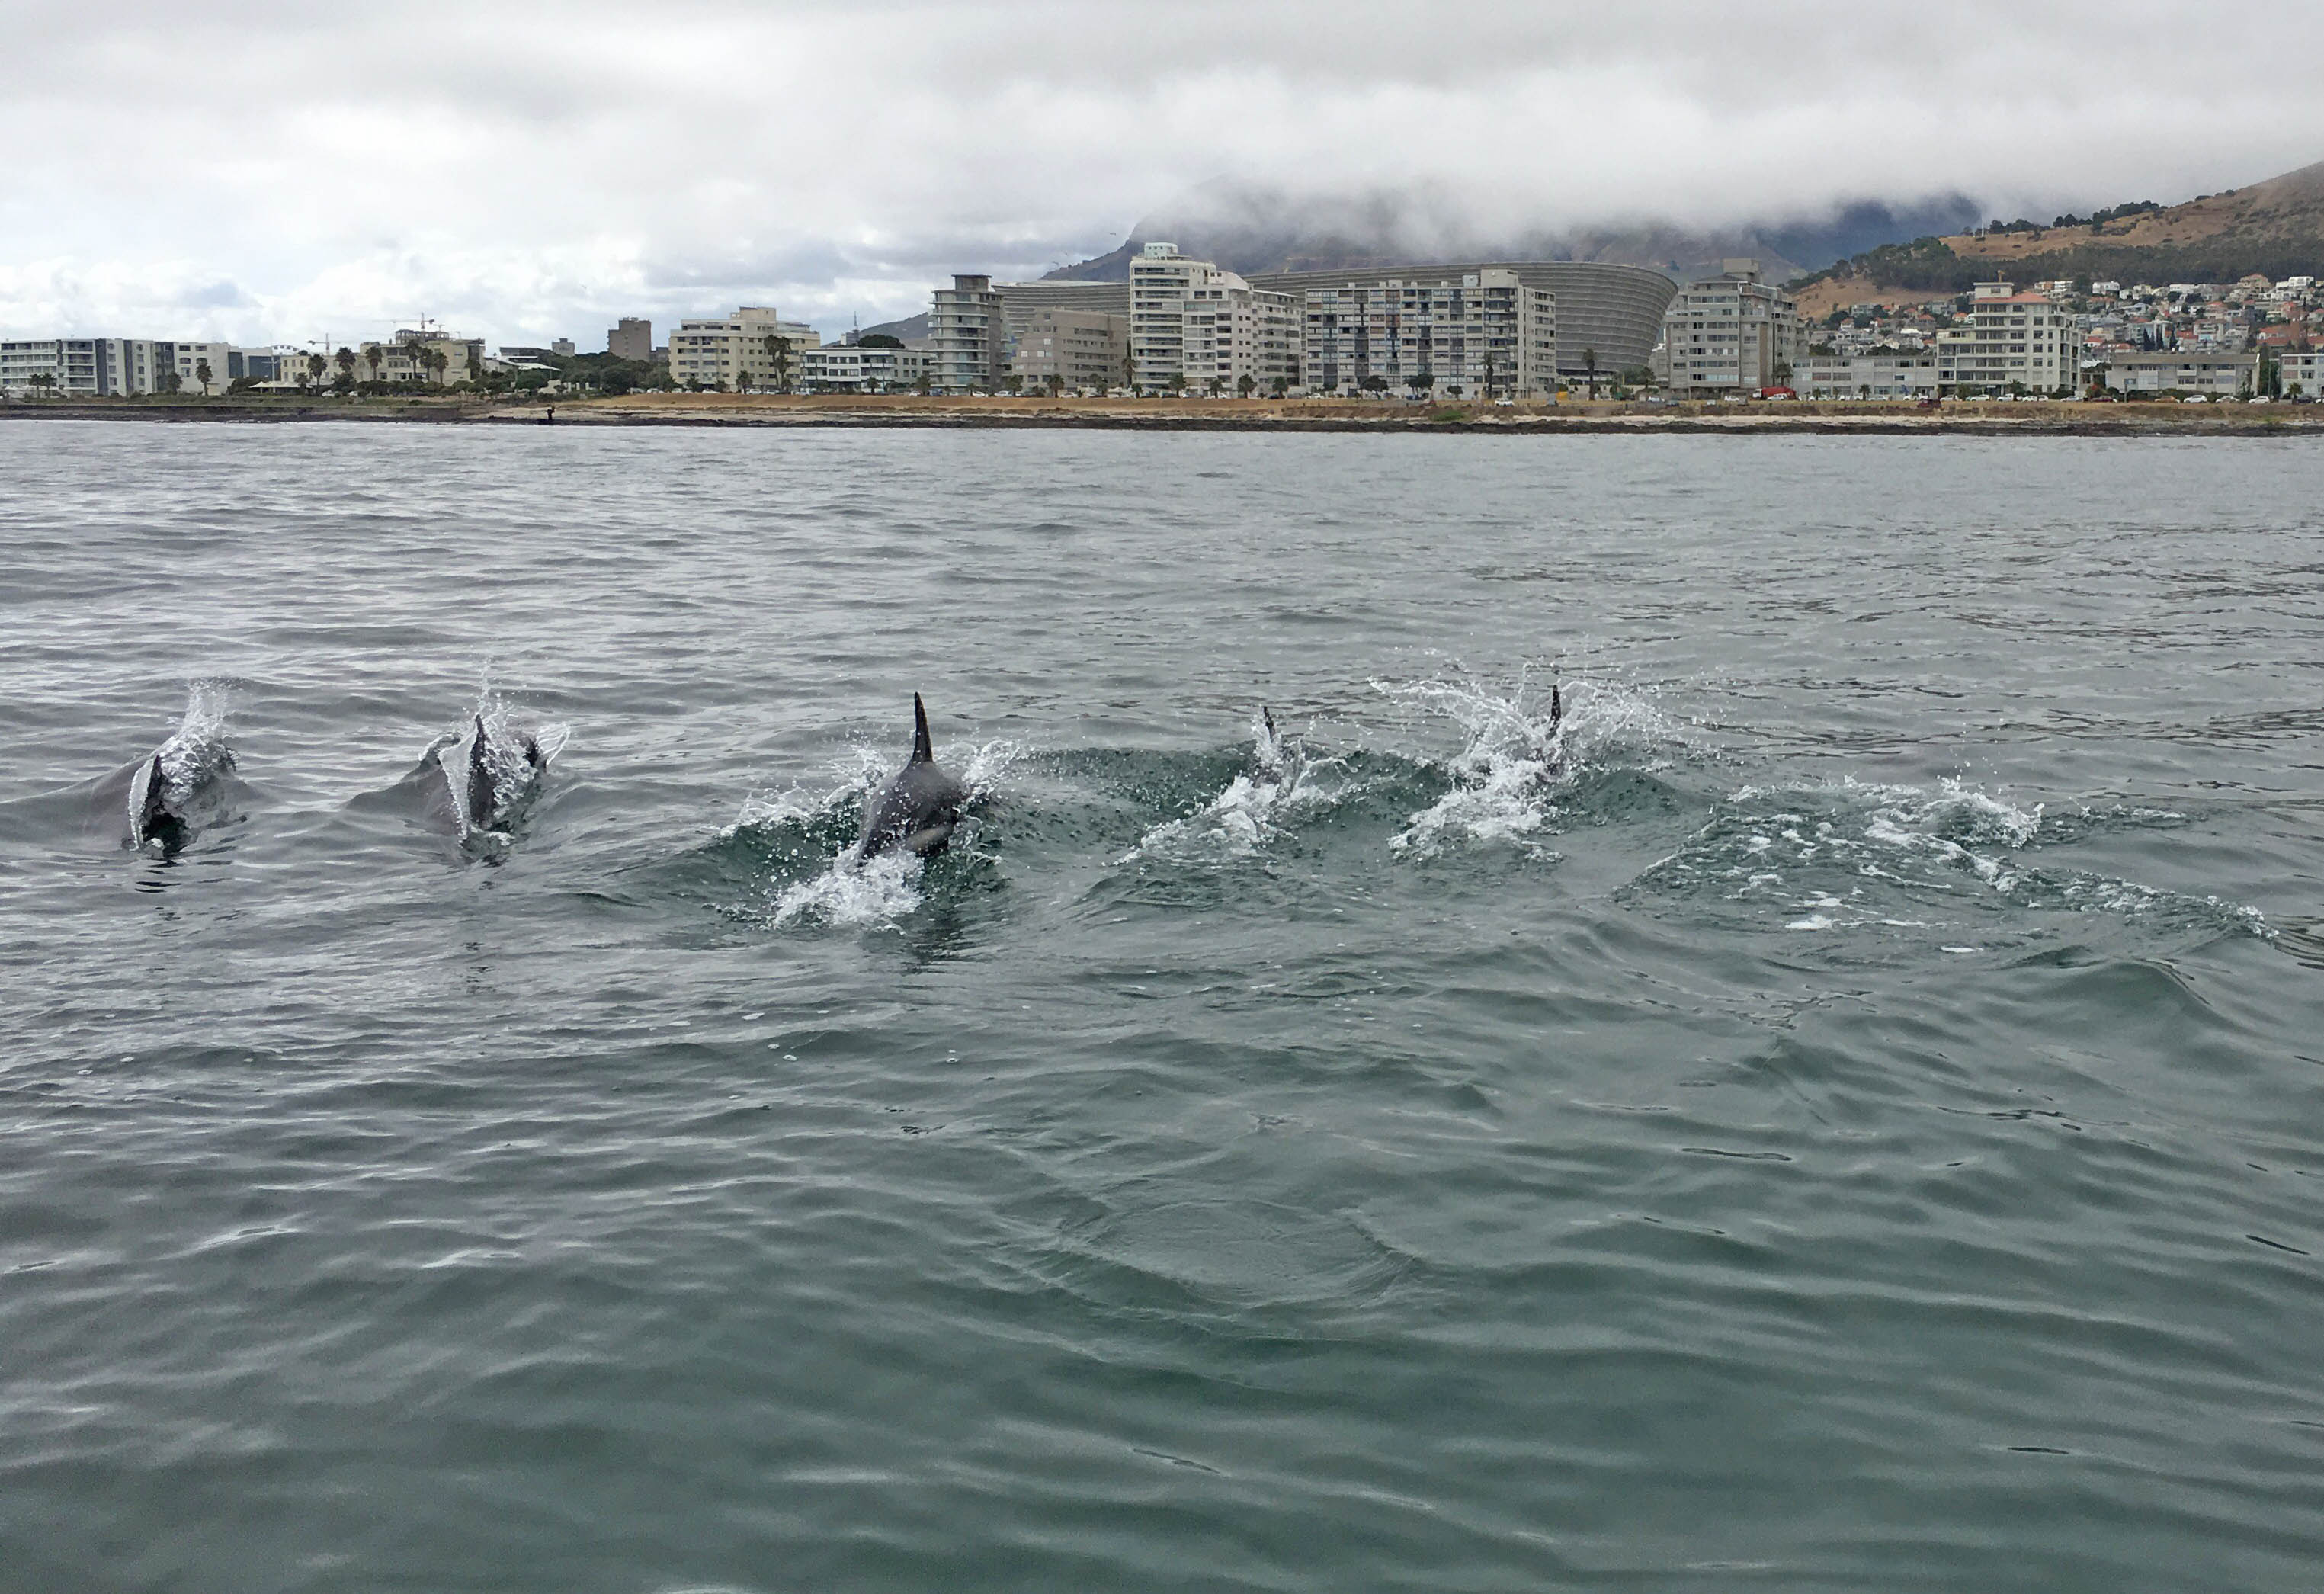 Dolphins joined the rescue boat at one point. Picture Robyn Silverstone/NSRI